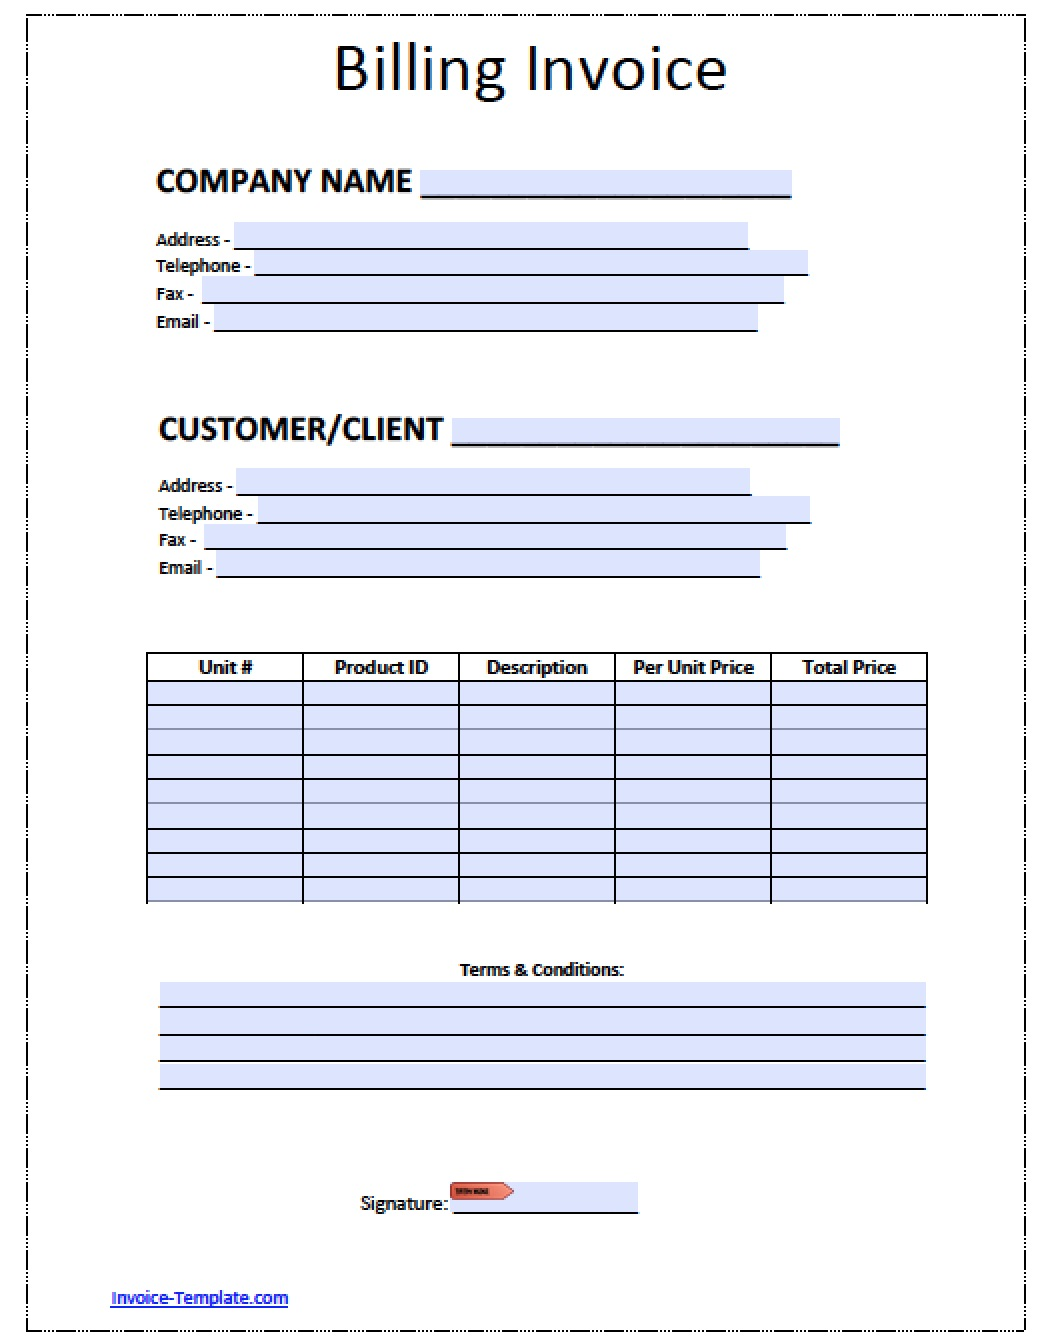 Free Billing Invoice Template Excel PDF Word Doc - Invoice sheet example